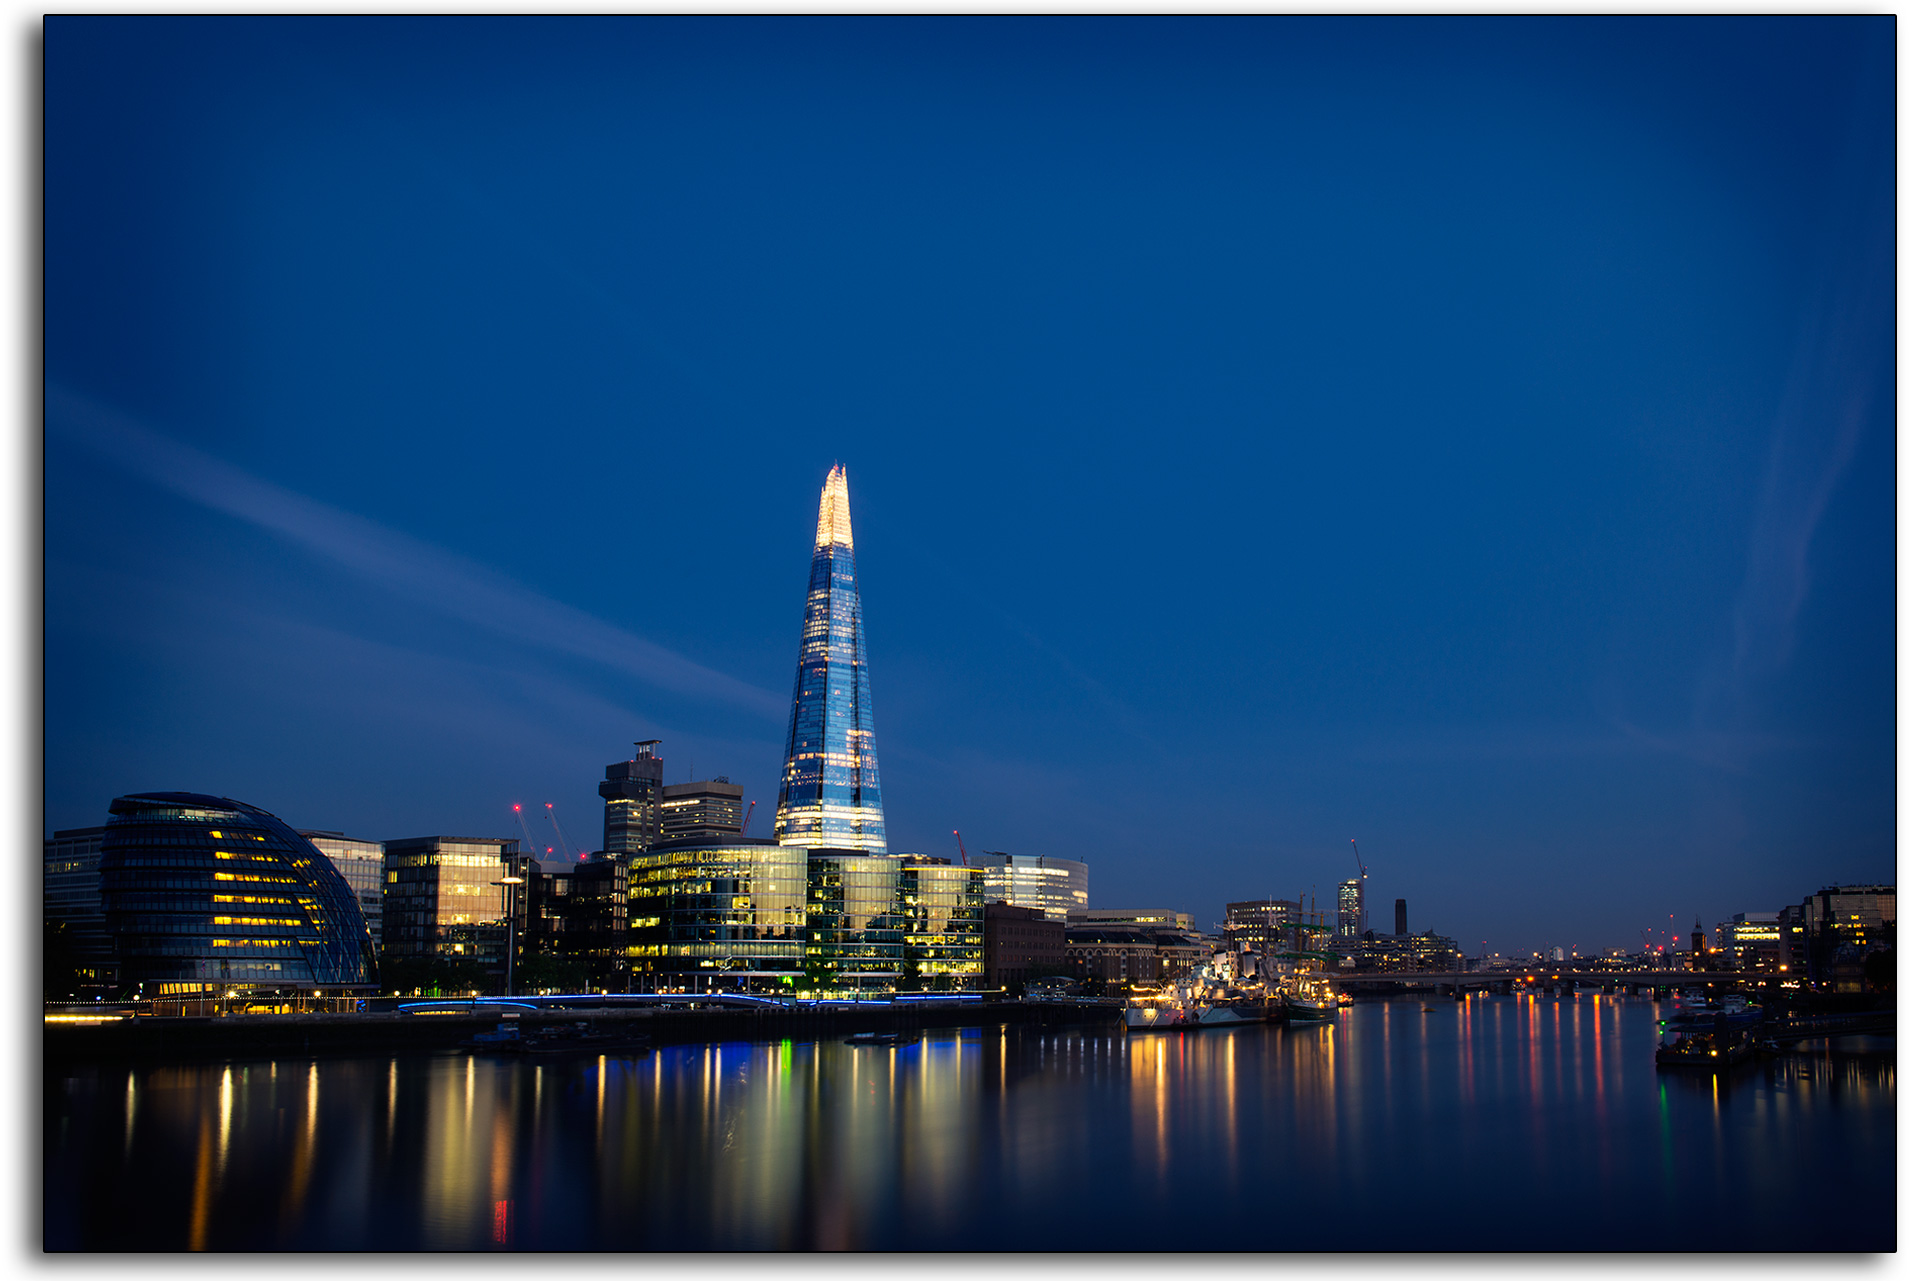 London the shard viewing gallery town hall river thames long exposure lee ramsden professional photographer www.leeramsden.com blue sky illuminations hotel office building.jpg